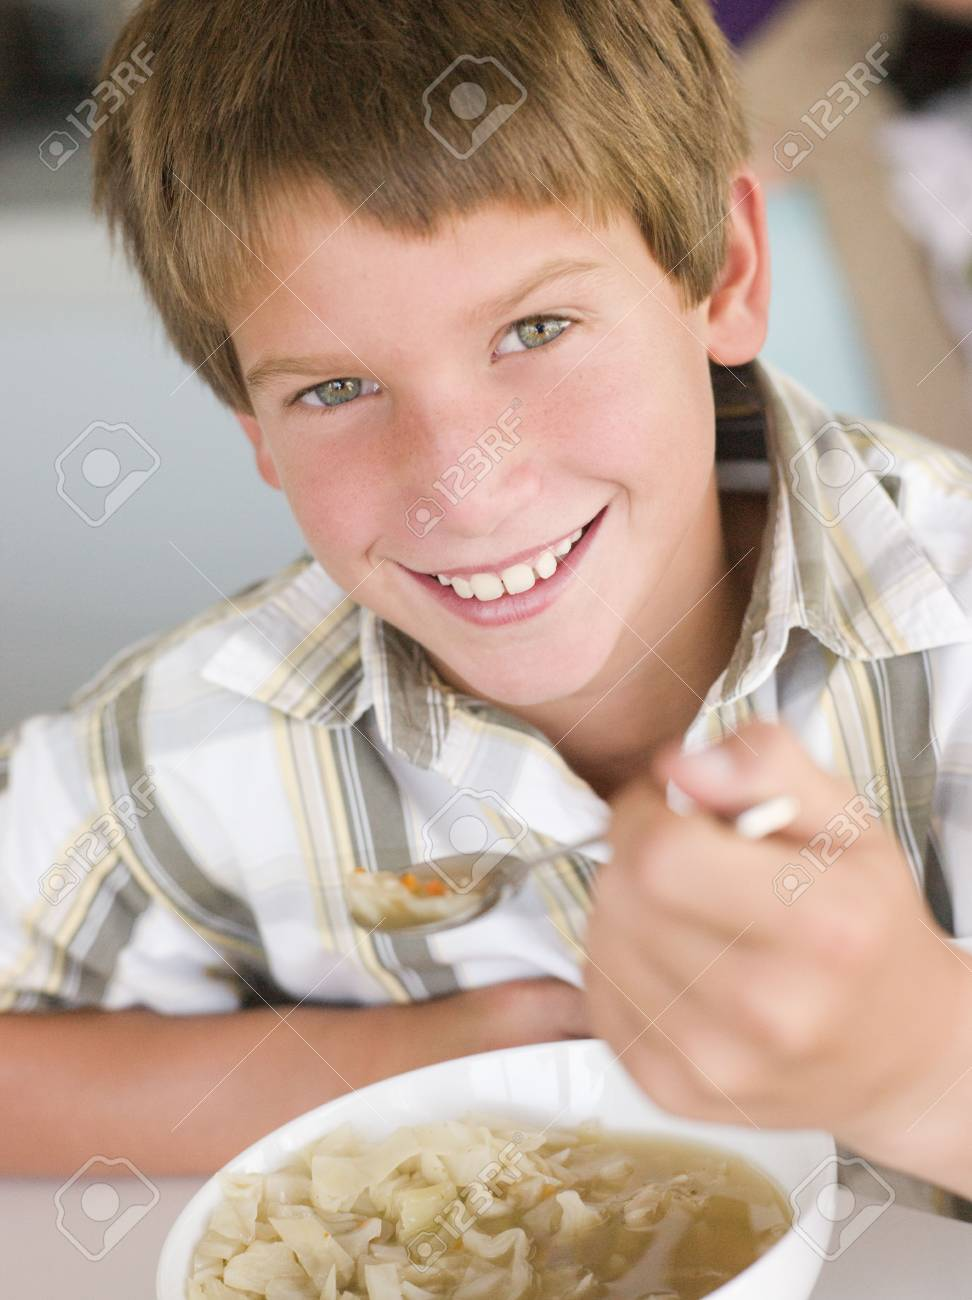 Young boy in kitchen eating soup and smiling Stock Photo - 3507212